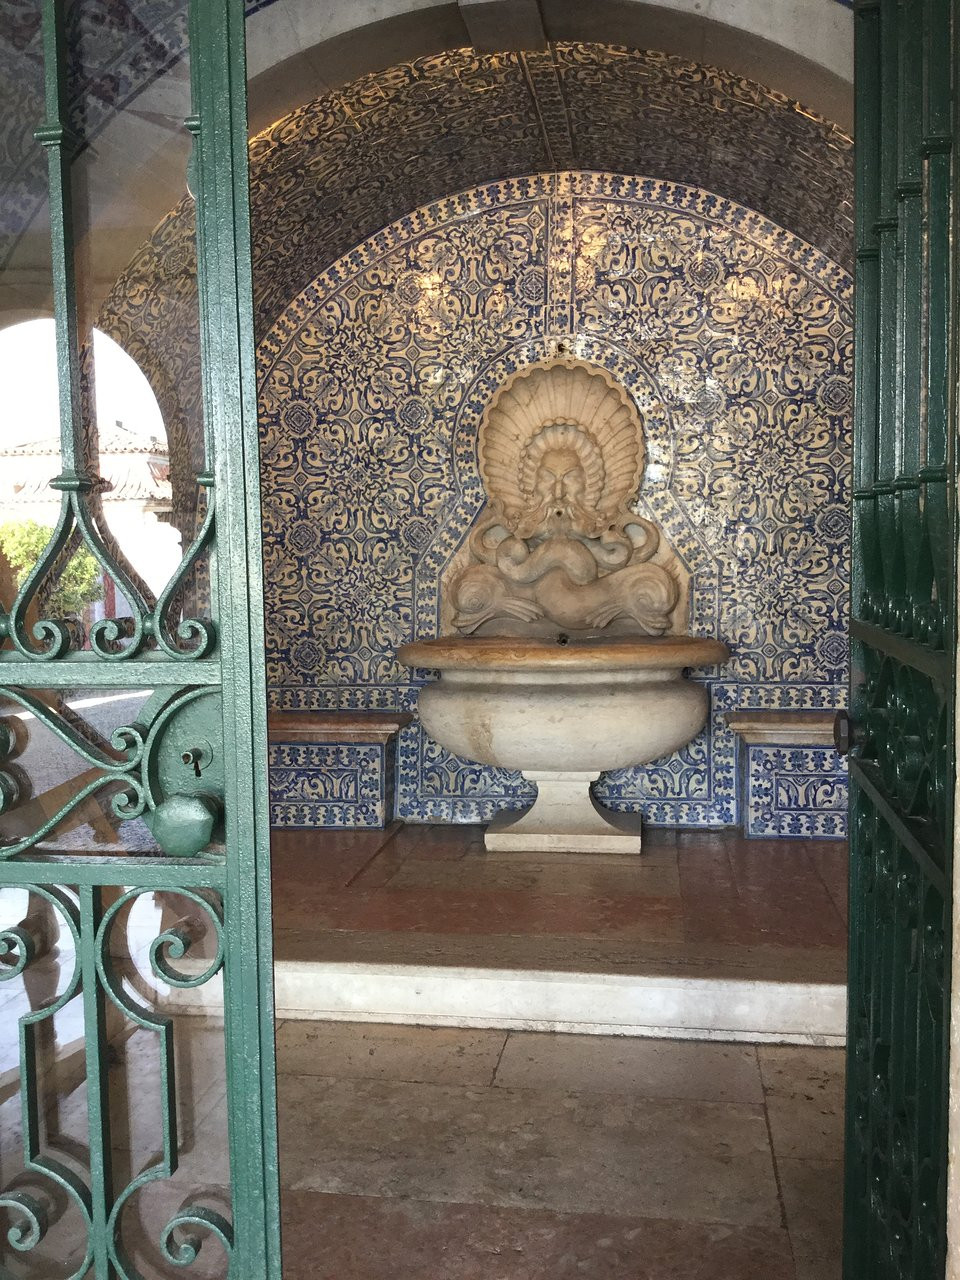 Moorish influence in the garden of Fronteira Palace